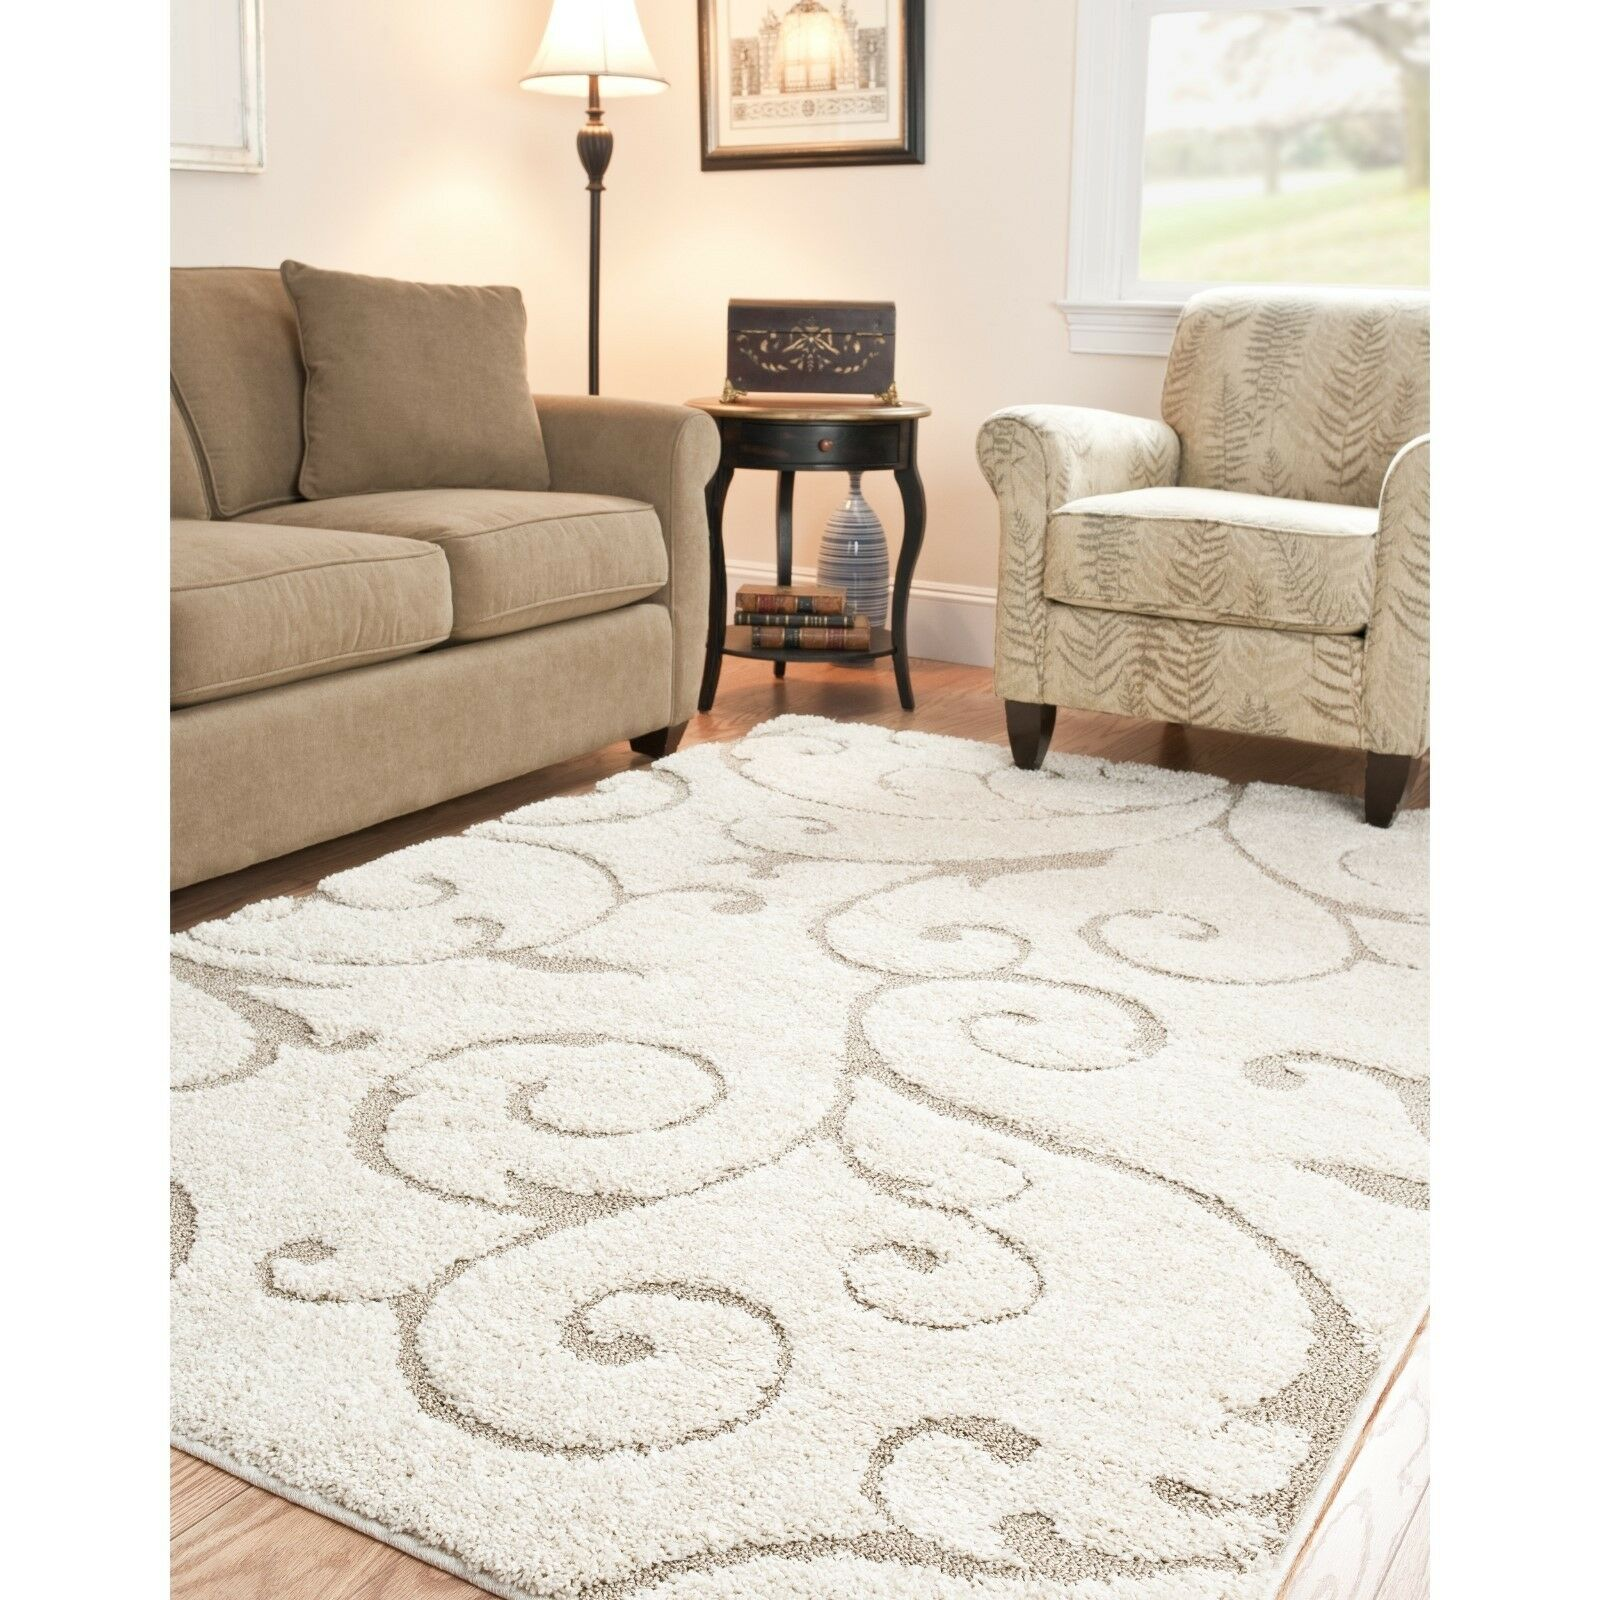 Modern area rug shag carpet floor dining living room - Living room area rugs contemporary ...